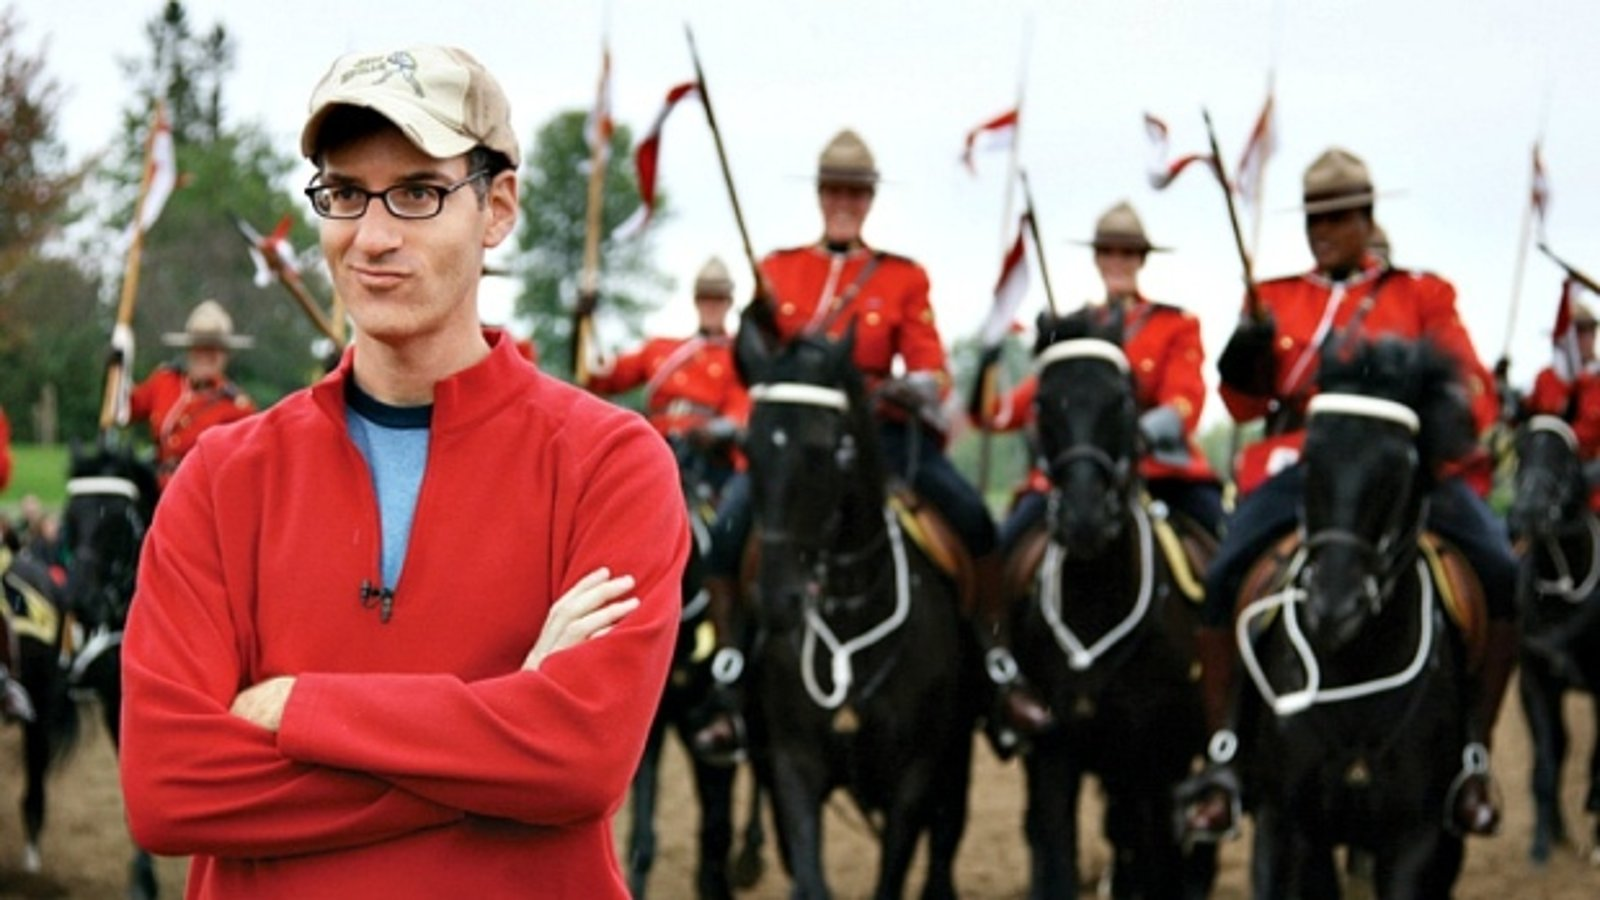 Being Canadian - Investigating Canadian Stereotypes